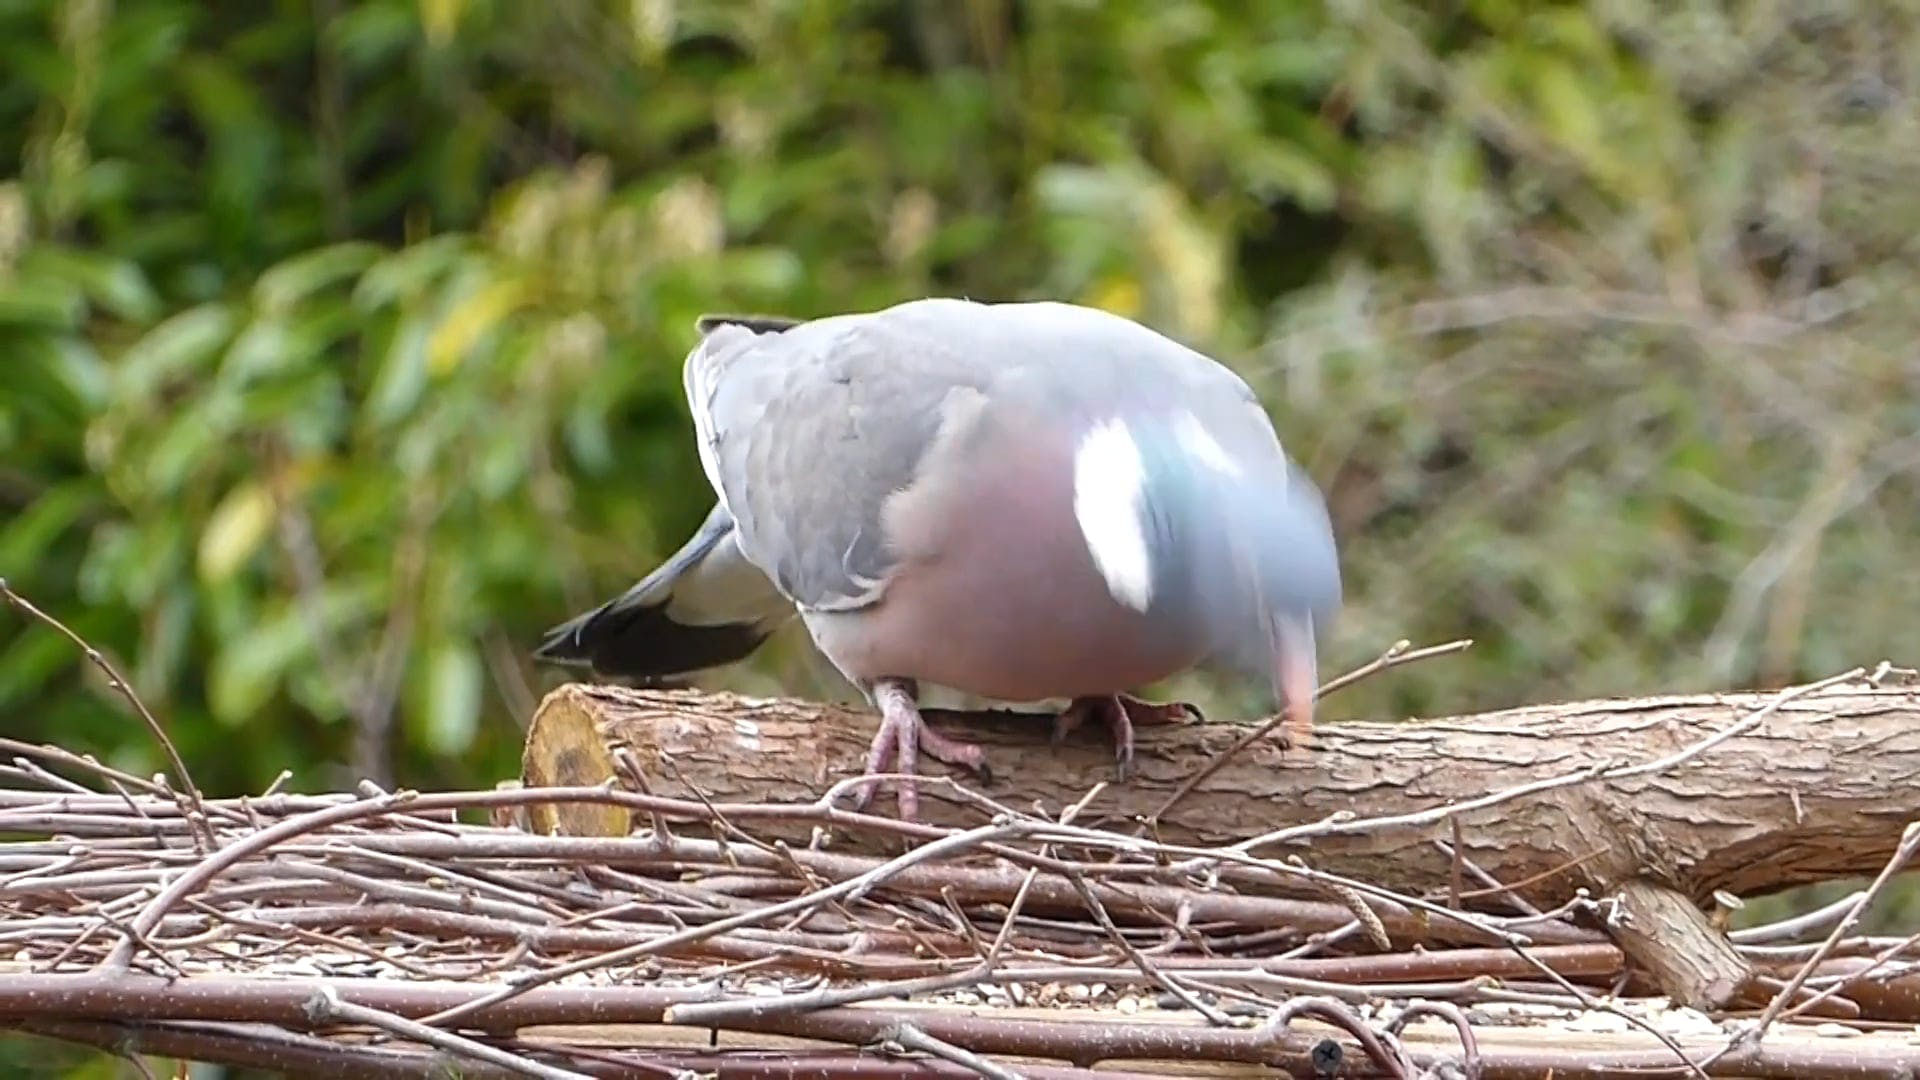 Video Of Pigeon Looking For Food